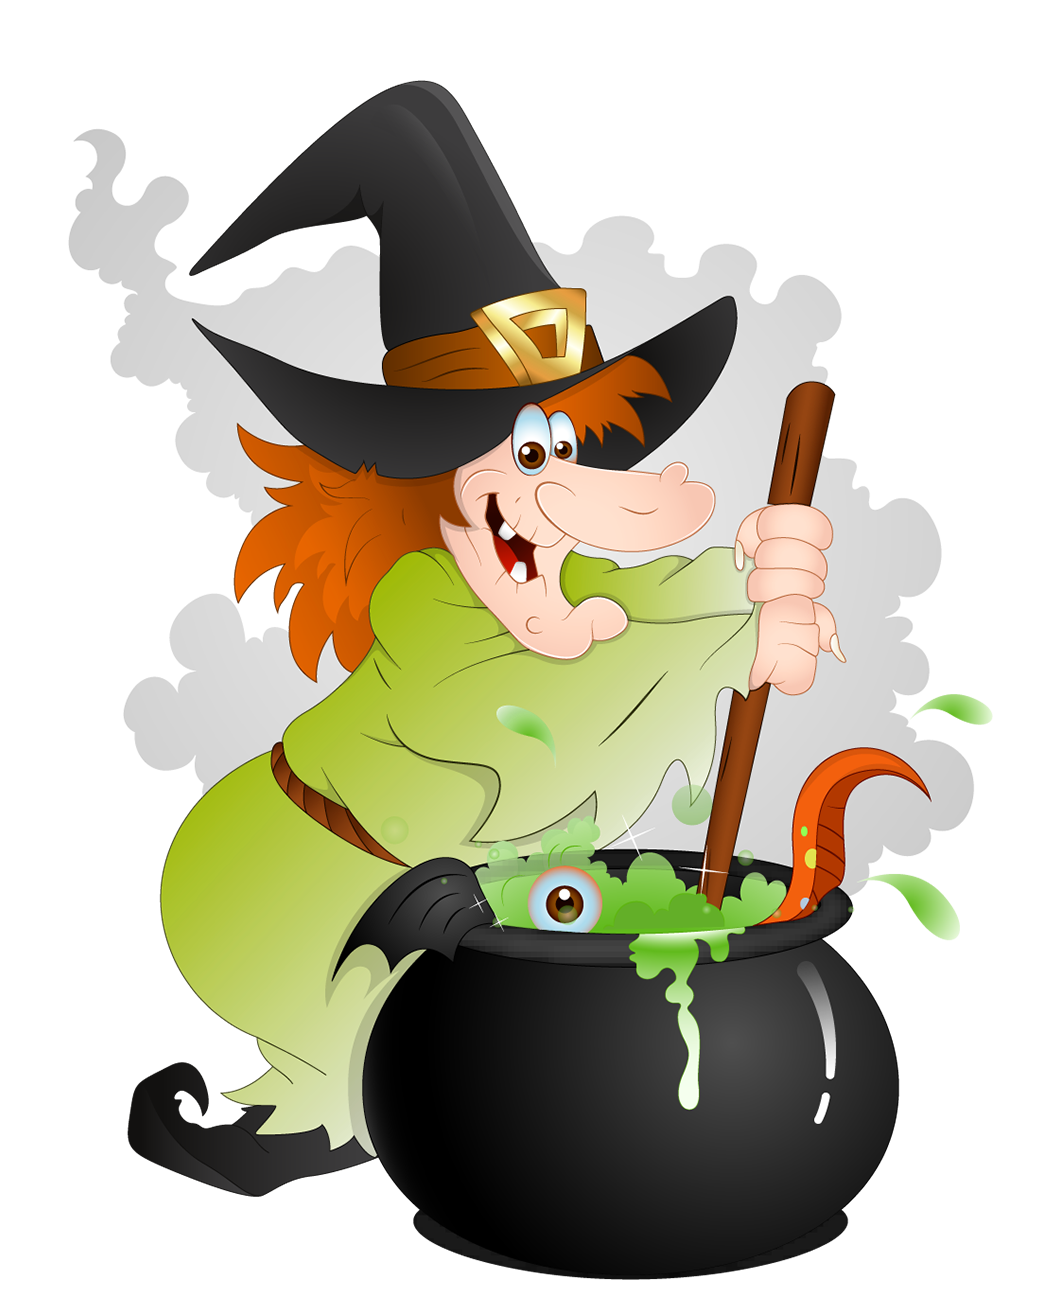 1045x1300 Free Witches Broom Clipart Public Domain Halloween Clip Art Image